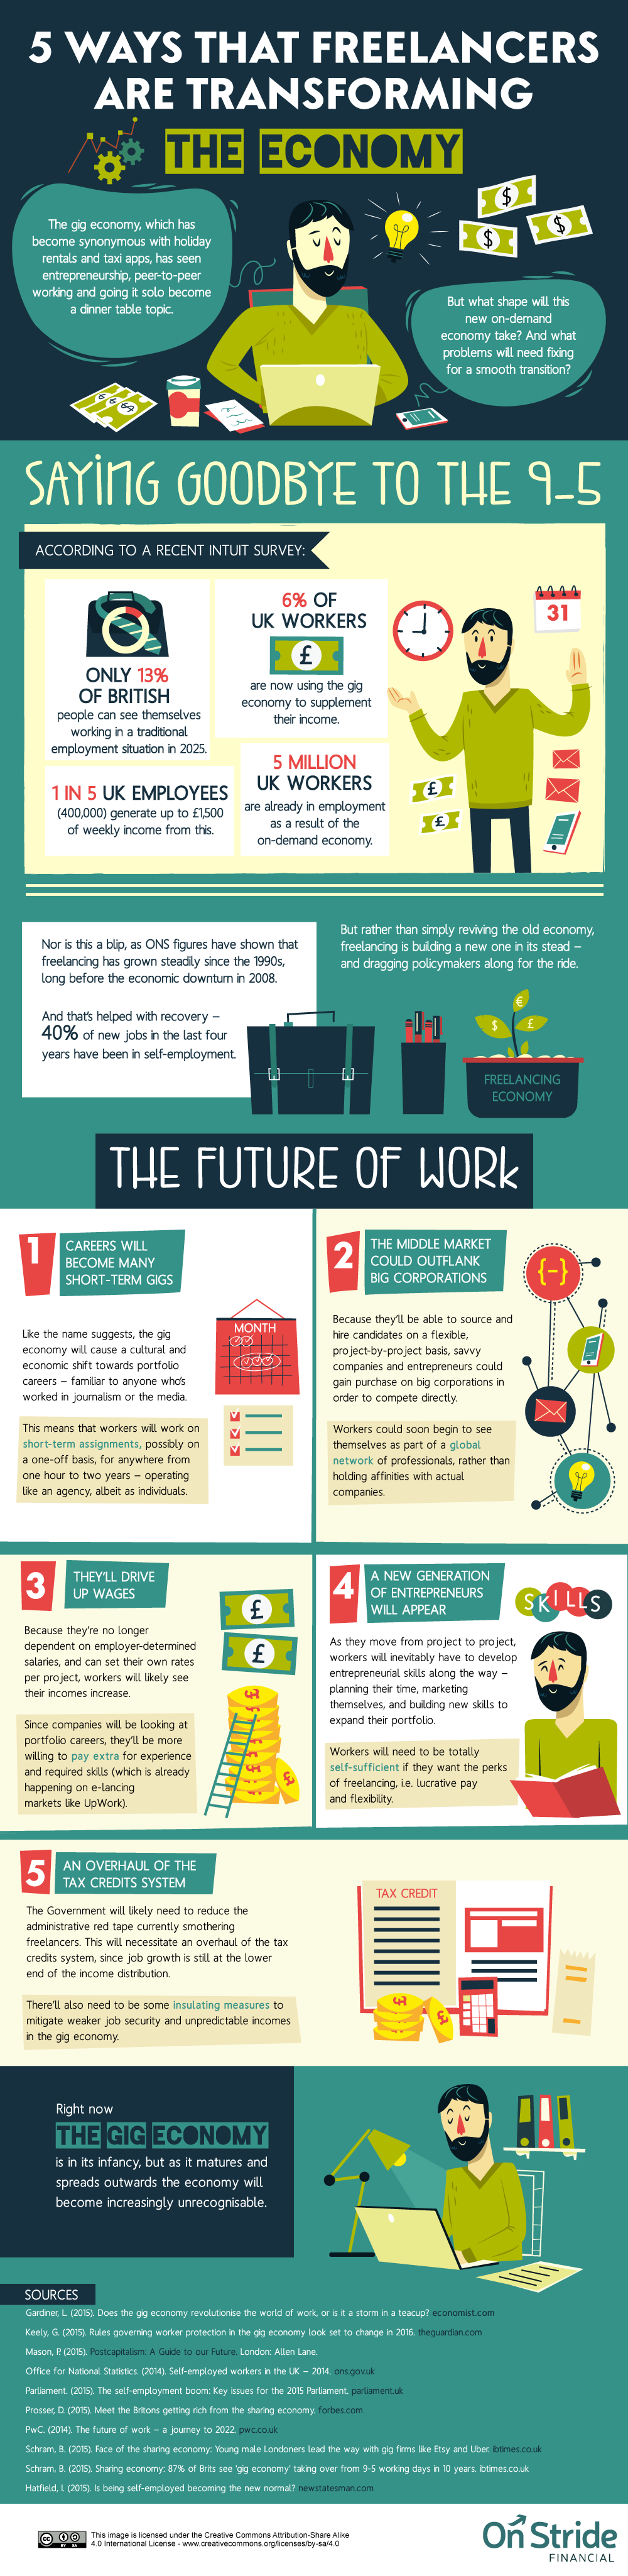 freelancers-transforming-the-economy-infographic (1)